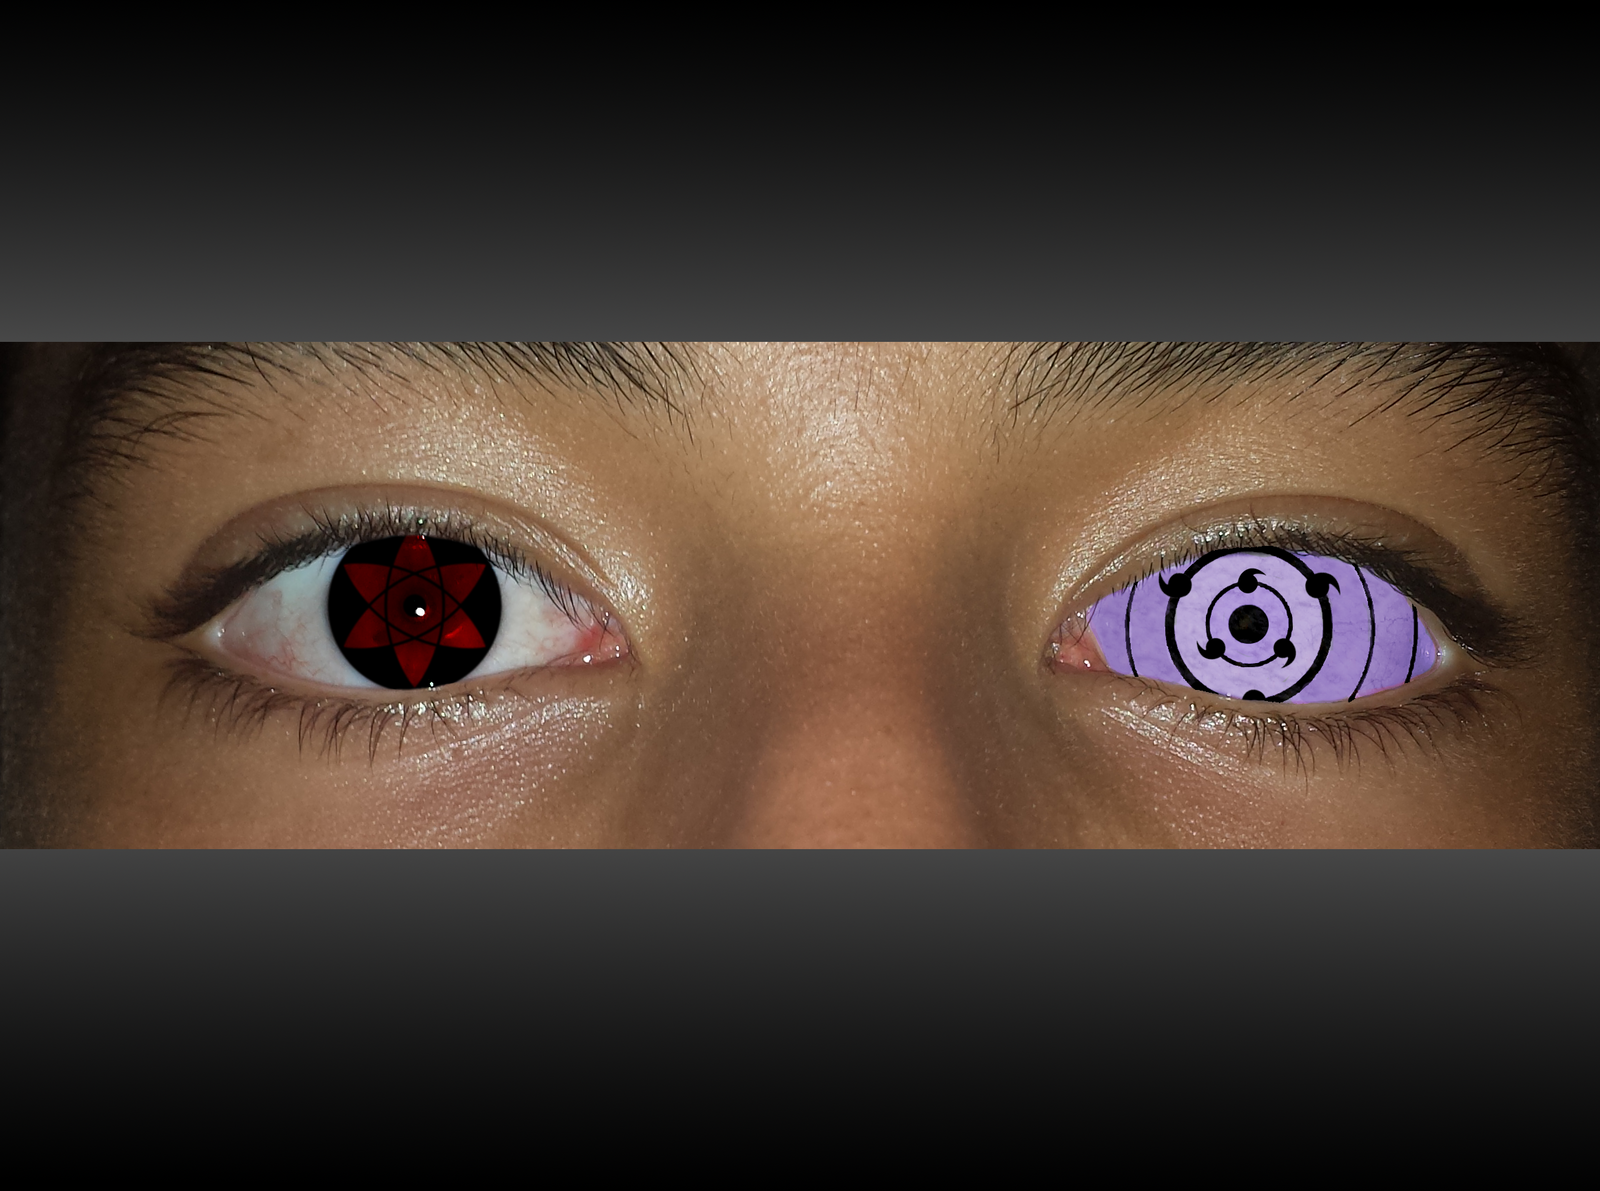 Sharingan Rinnegan by yovan1010 on DeviantArt